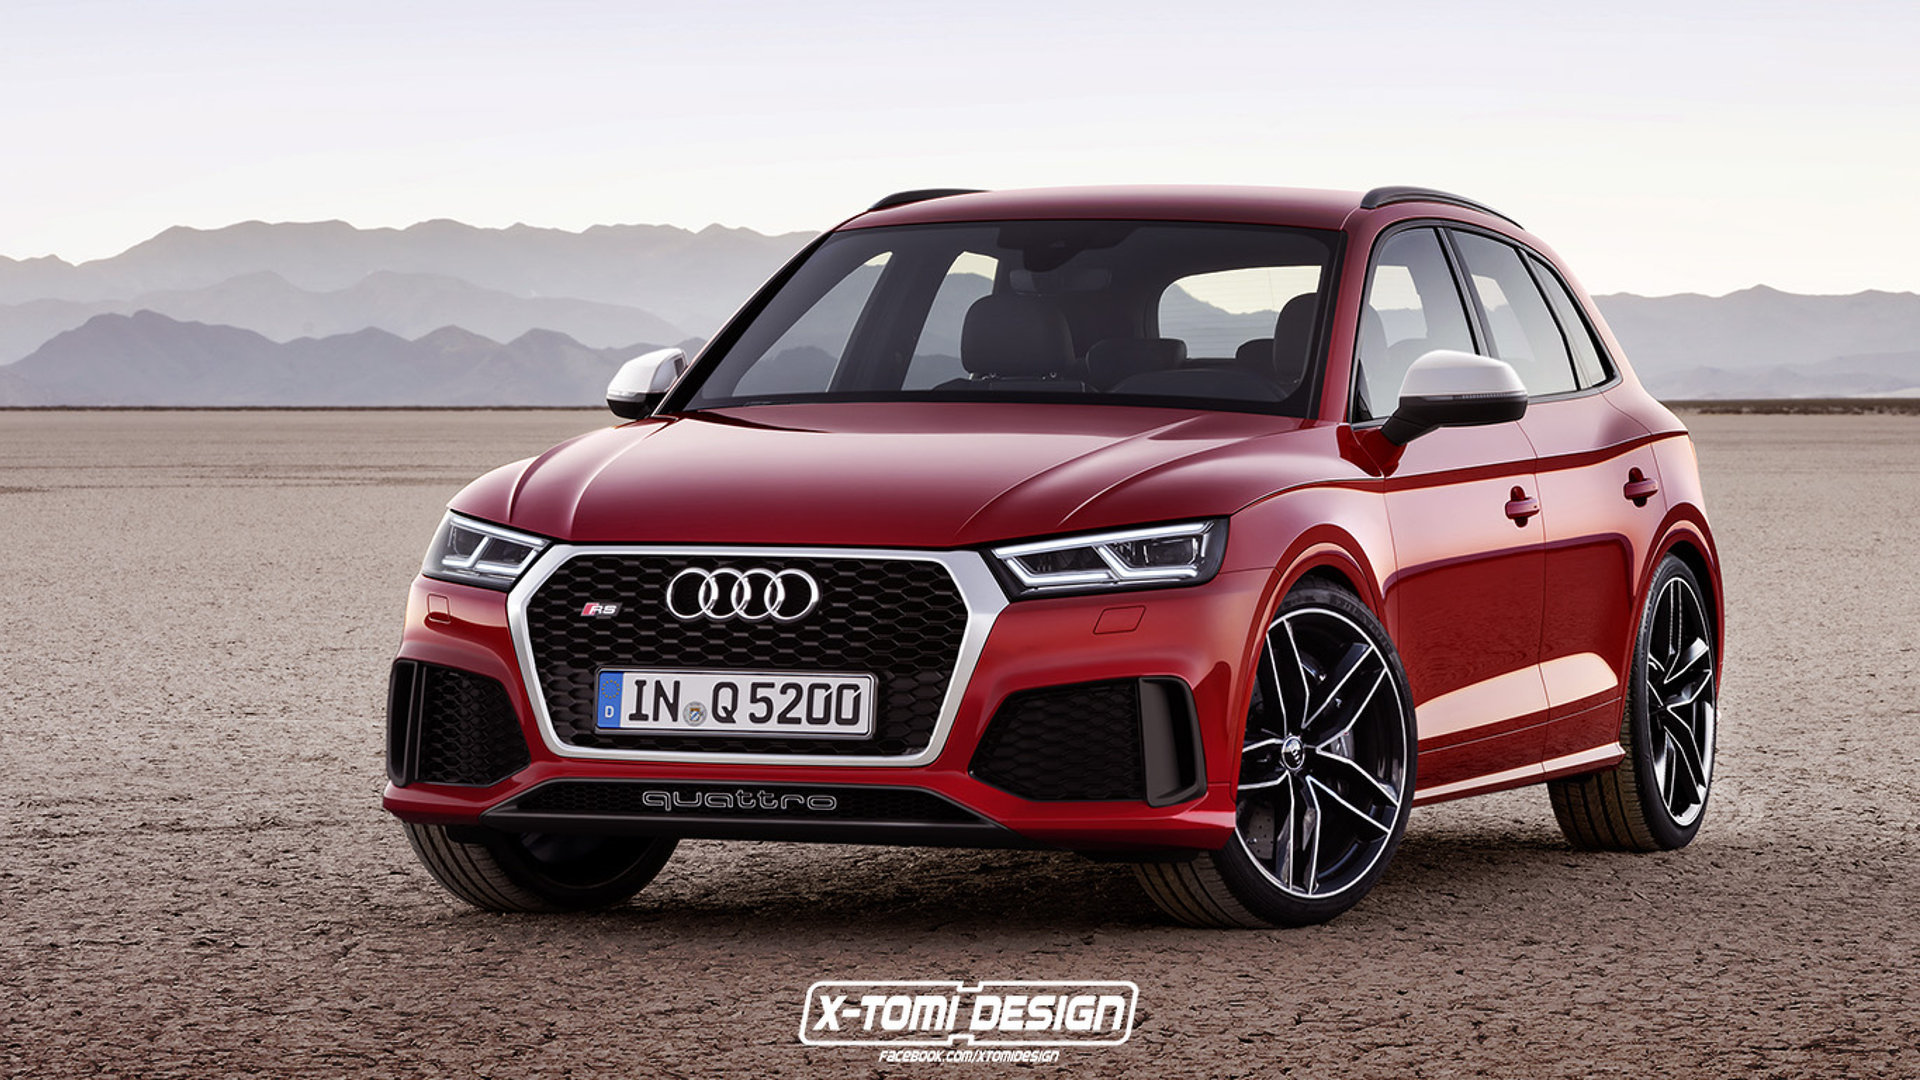 Audi RS Q5 could look like this